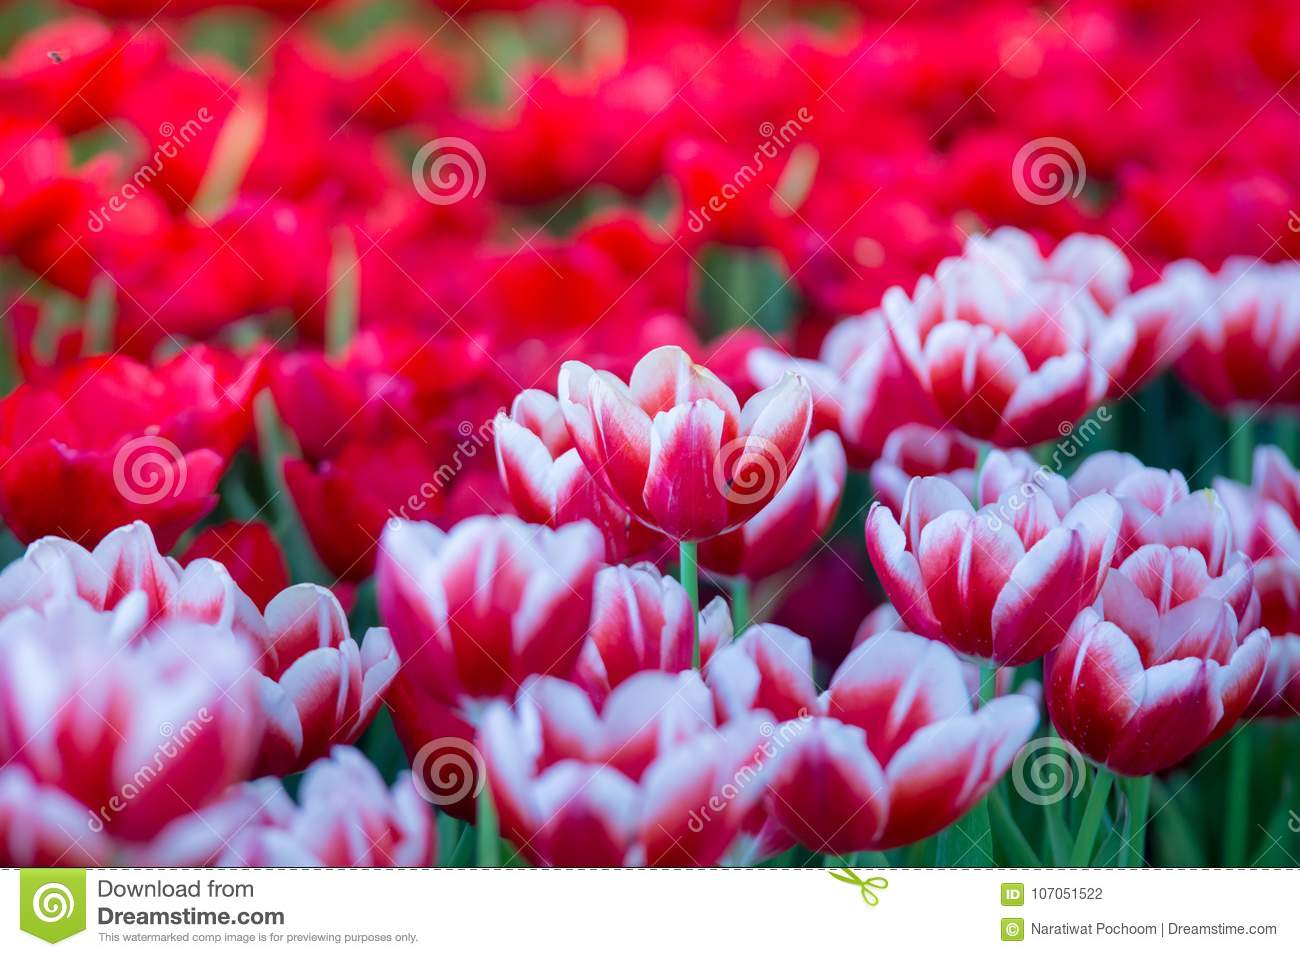 Tulips Flowers Beautiful Bouquet Of Tulips Colorful Flowers Background Wallpaper Stock Photo Image Of Bouquet Background 107051522